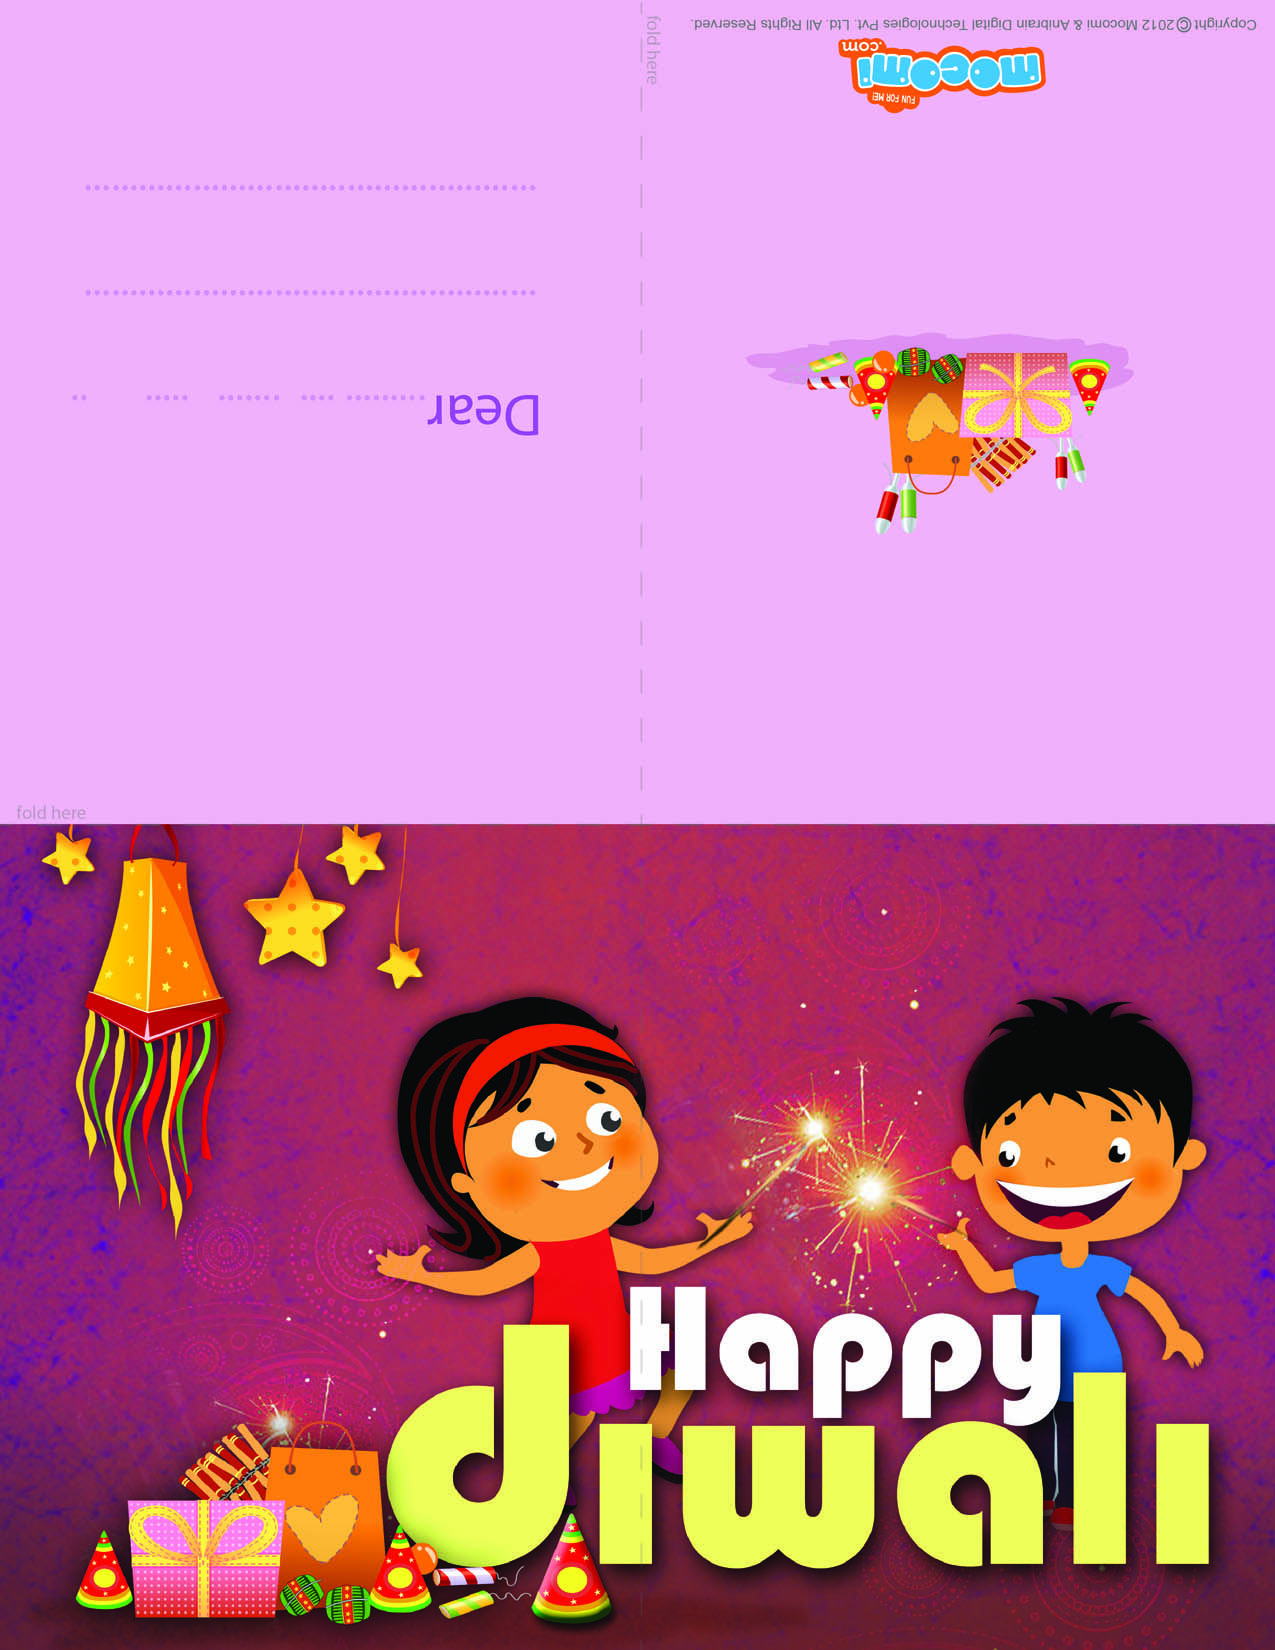 Happy diwali download this free diwaligreetingcard to send your happy diwali diwali greeting card for kids kristyandbryce Images